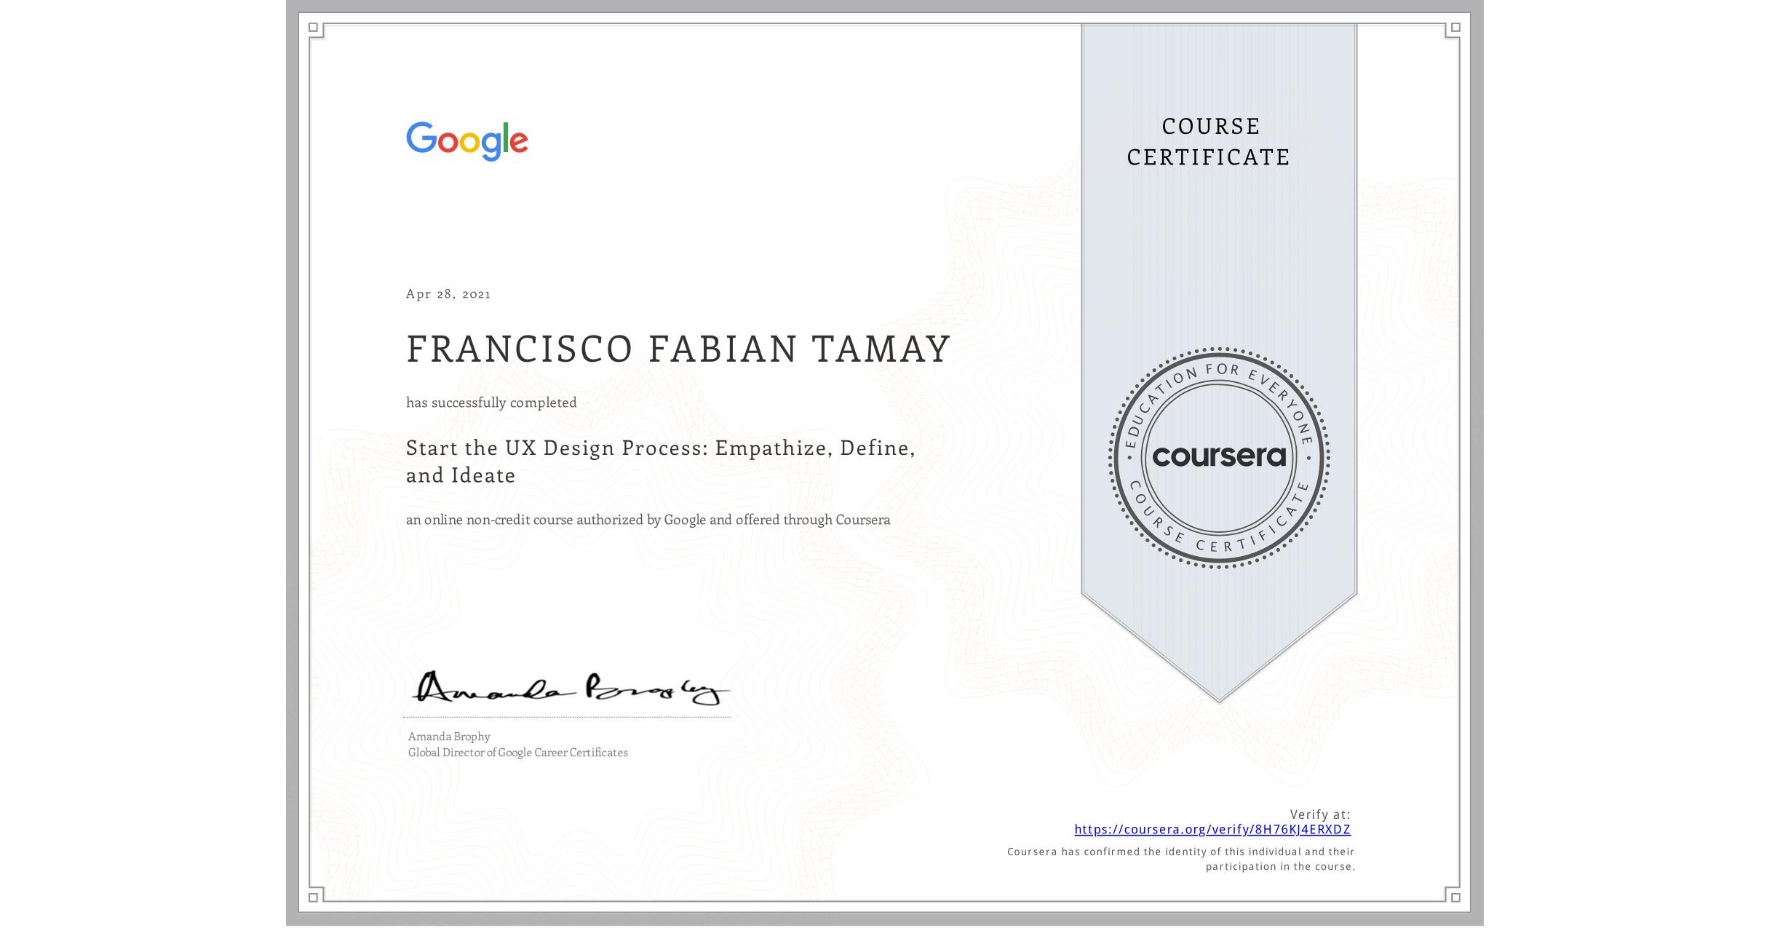 View certificate for FRANCISCO FABIAN  TAMAY, Start the UX Design Process: Empathize, Define, and Ideate, an online non-credit course authorized by Google and offered through Coursera